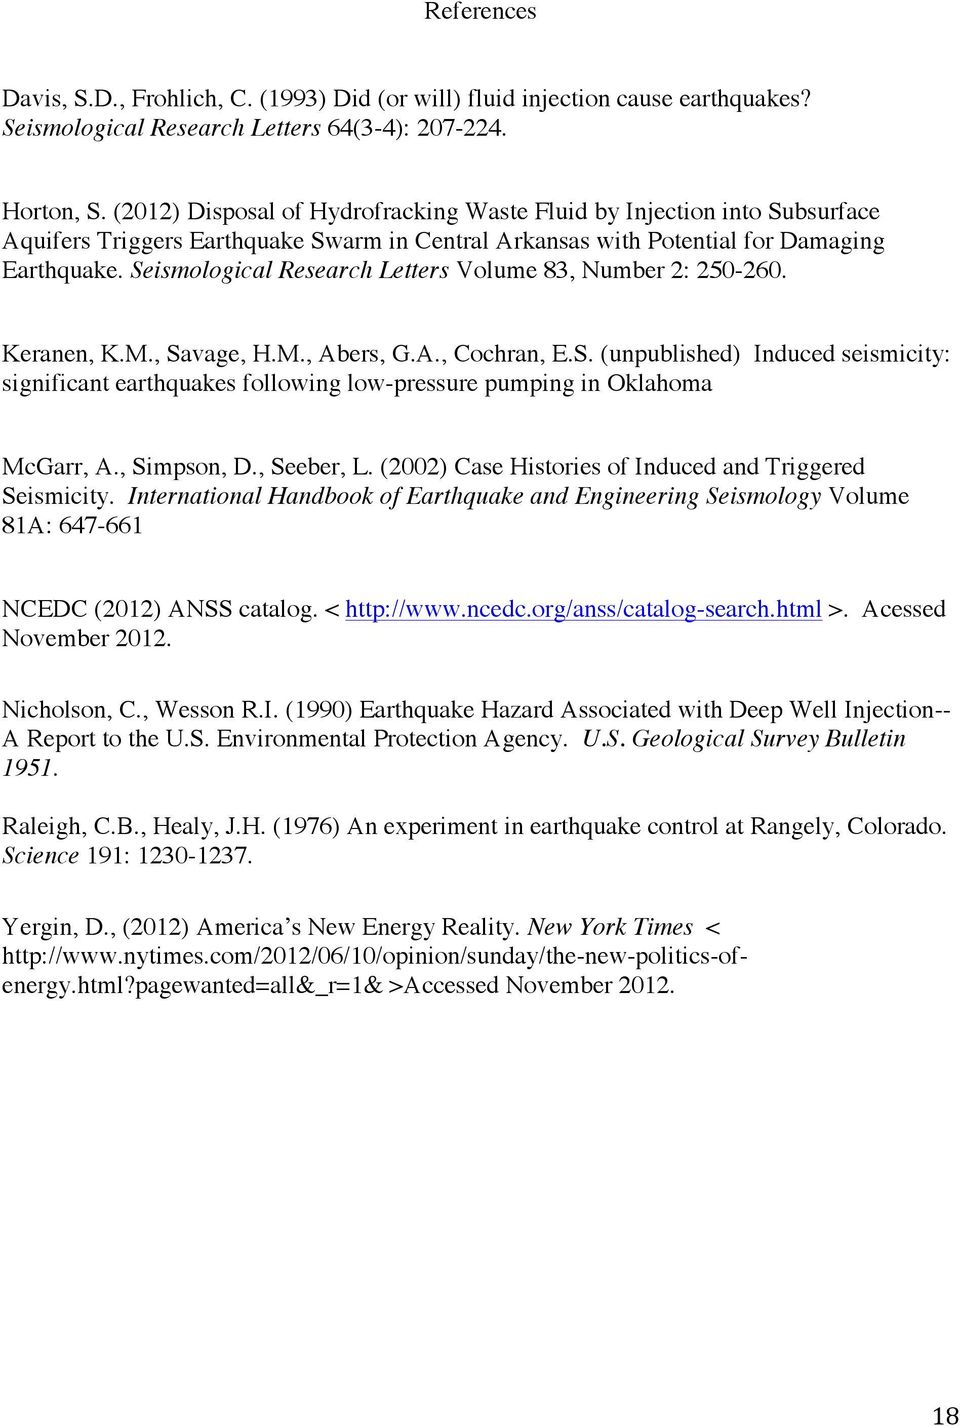 Seismological Research Letters Volume 83, Number 2: 250-260. Keranen, K.M., Savage, H.M., Abers, G.A., Cochran, E.S. (unpublished) Induced seismicity: significant earthquakes following low-pressure pumping in Oklahoma McGarr, A.